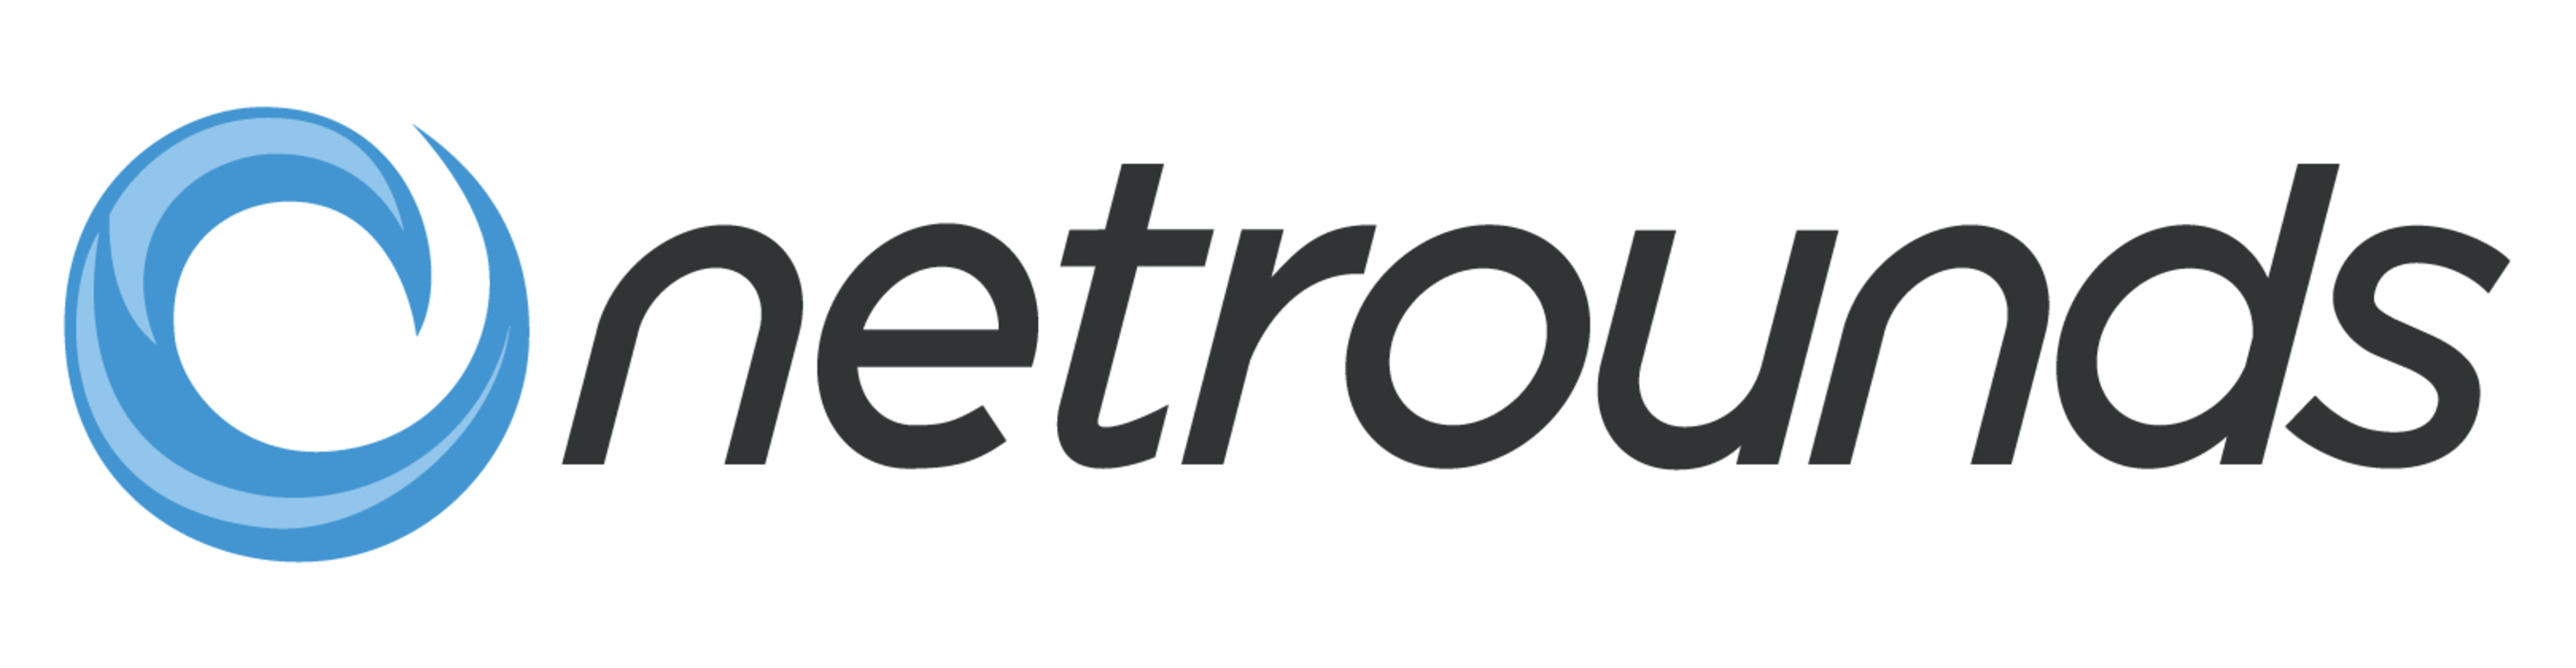 Netrounds and Ensemble, a Division of ADVA Optical Networking, Announce Joint Partnership to Showcase Cloud Service Provider Assurance Solution for Hybrid Environments